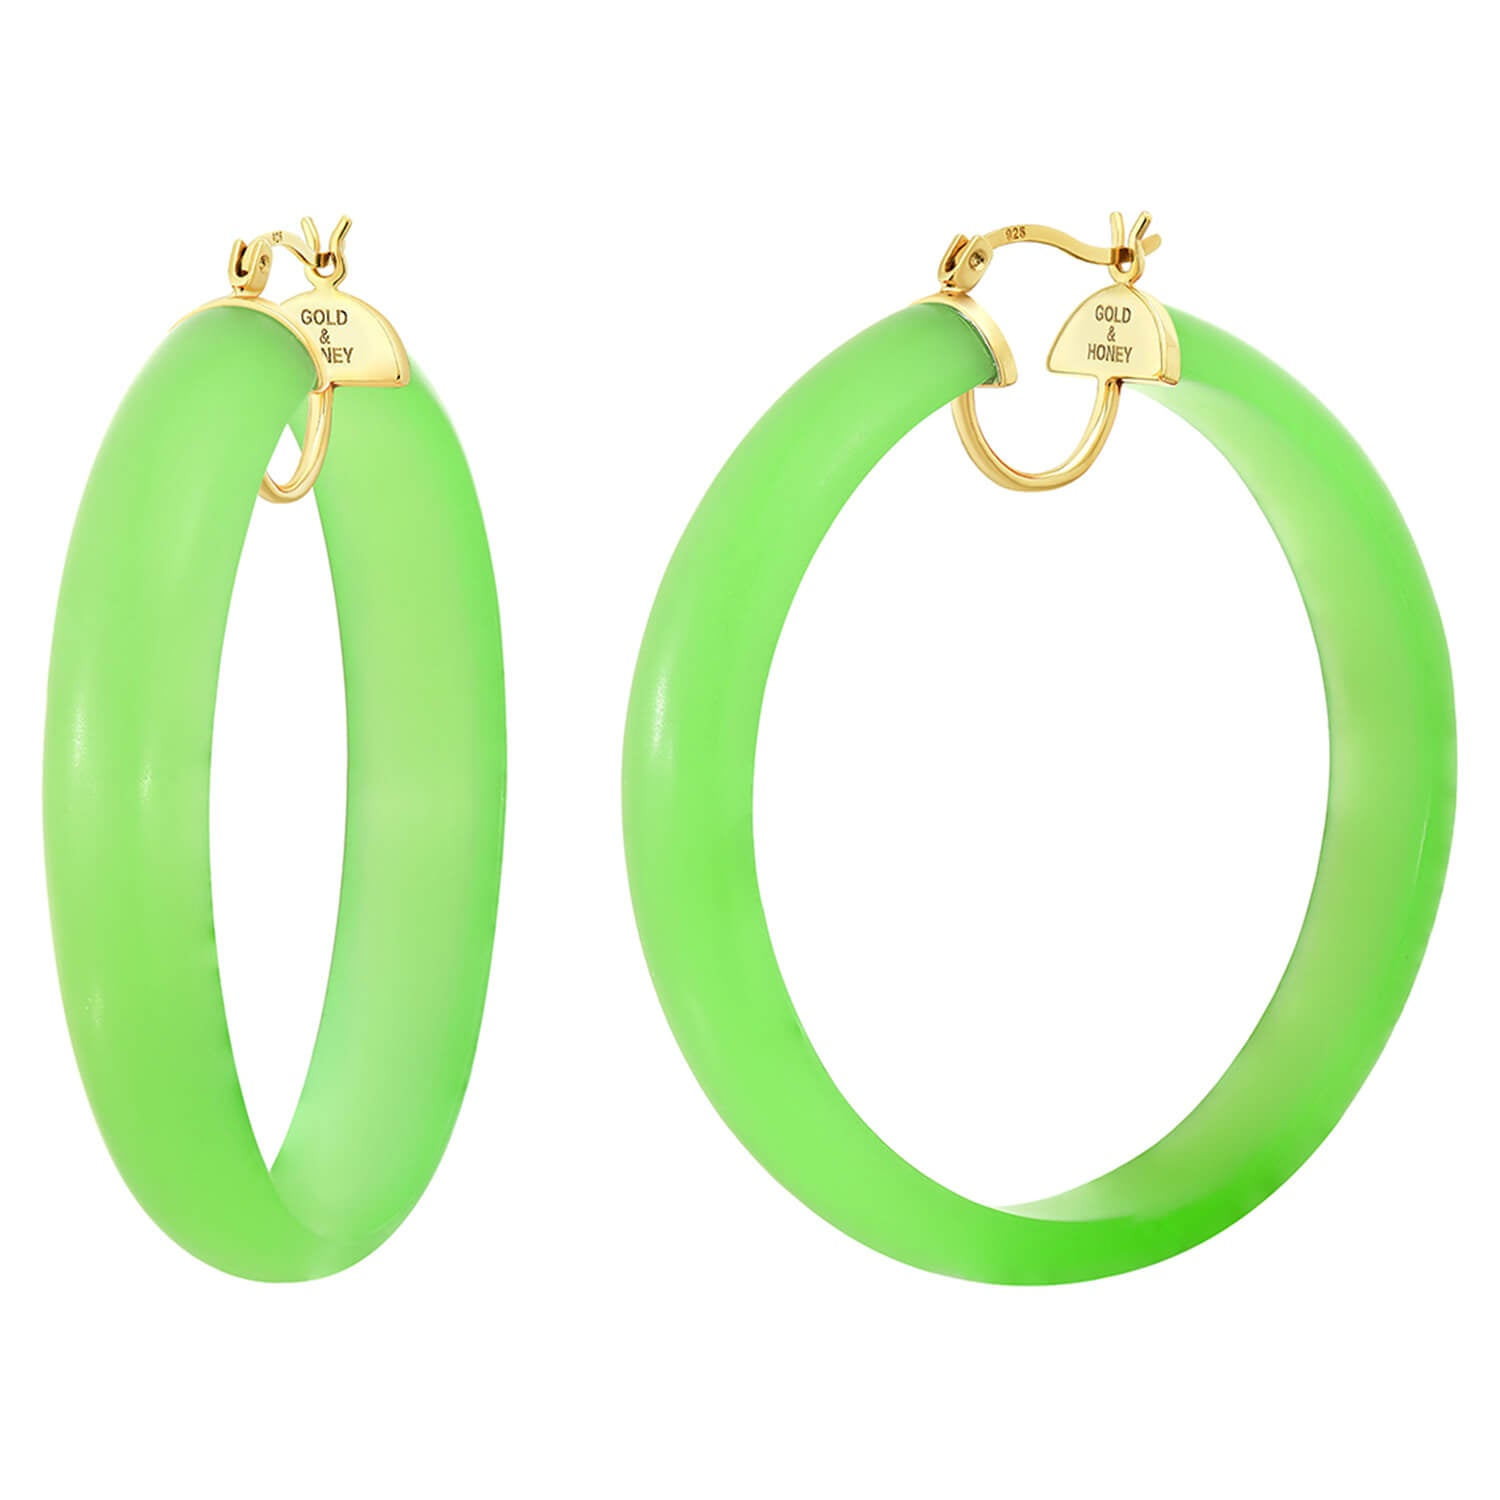 Frosted Lucite Hoops in Green